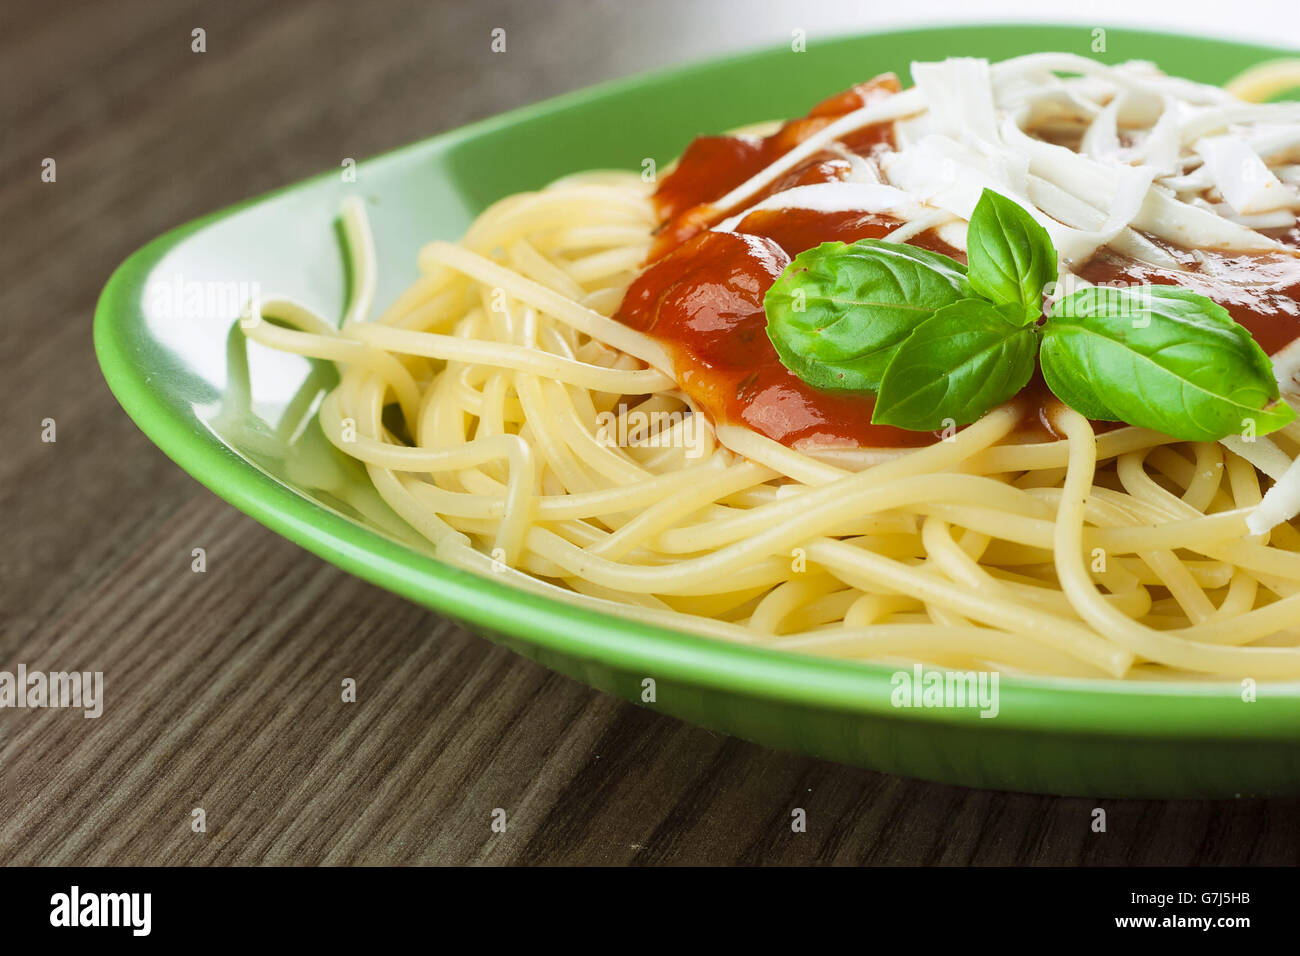 Cooked spaghetti with traditional Italian tomato souse served in a green plate on a wooden table - Stock Image